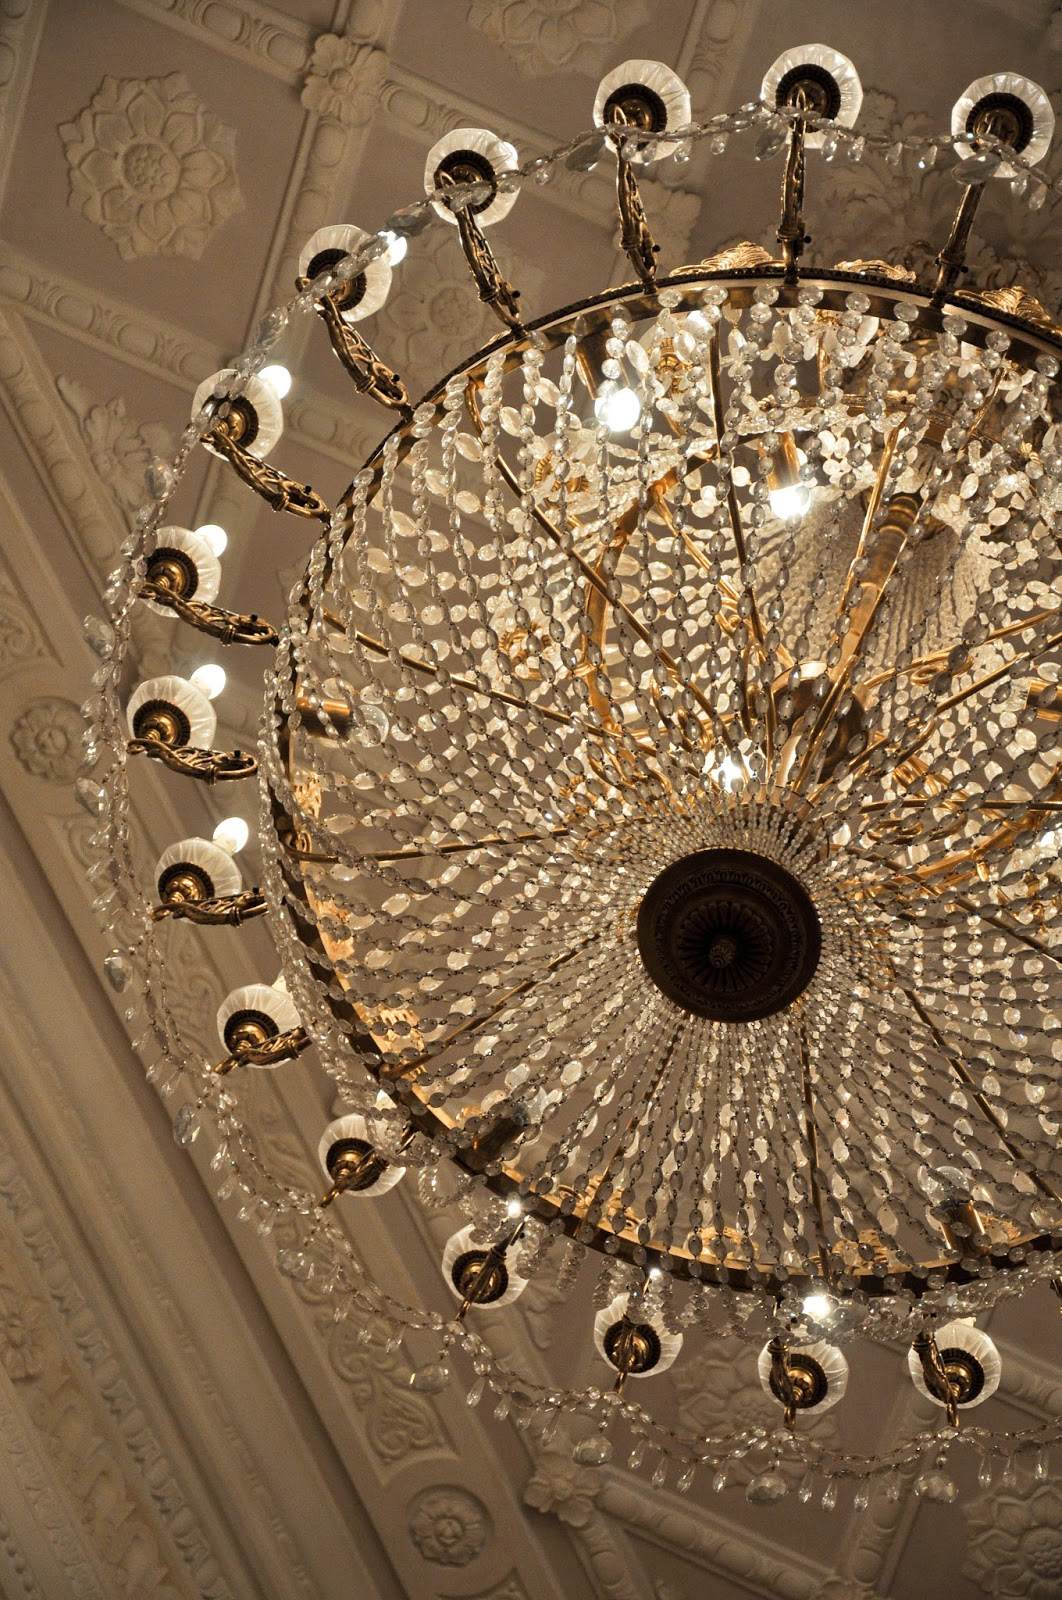 A close-up of a crystal chandelier, La Fenice, Venice, Italy